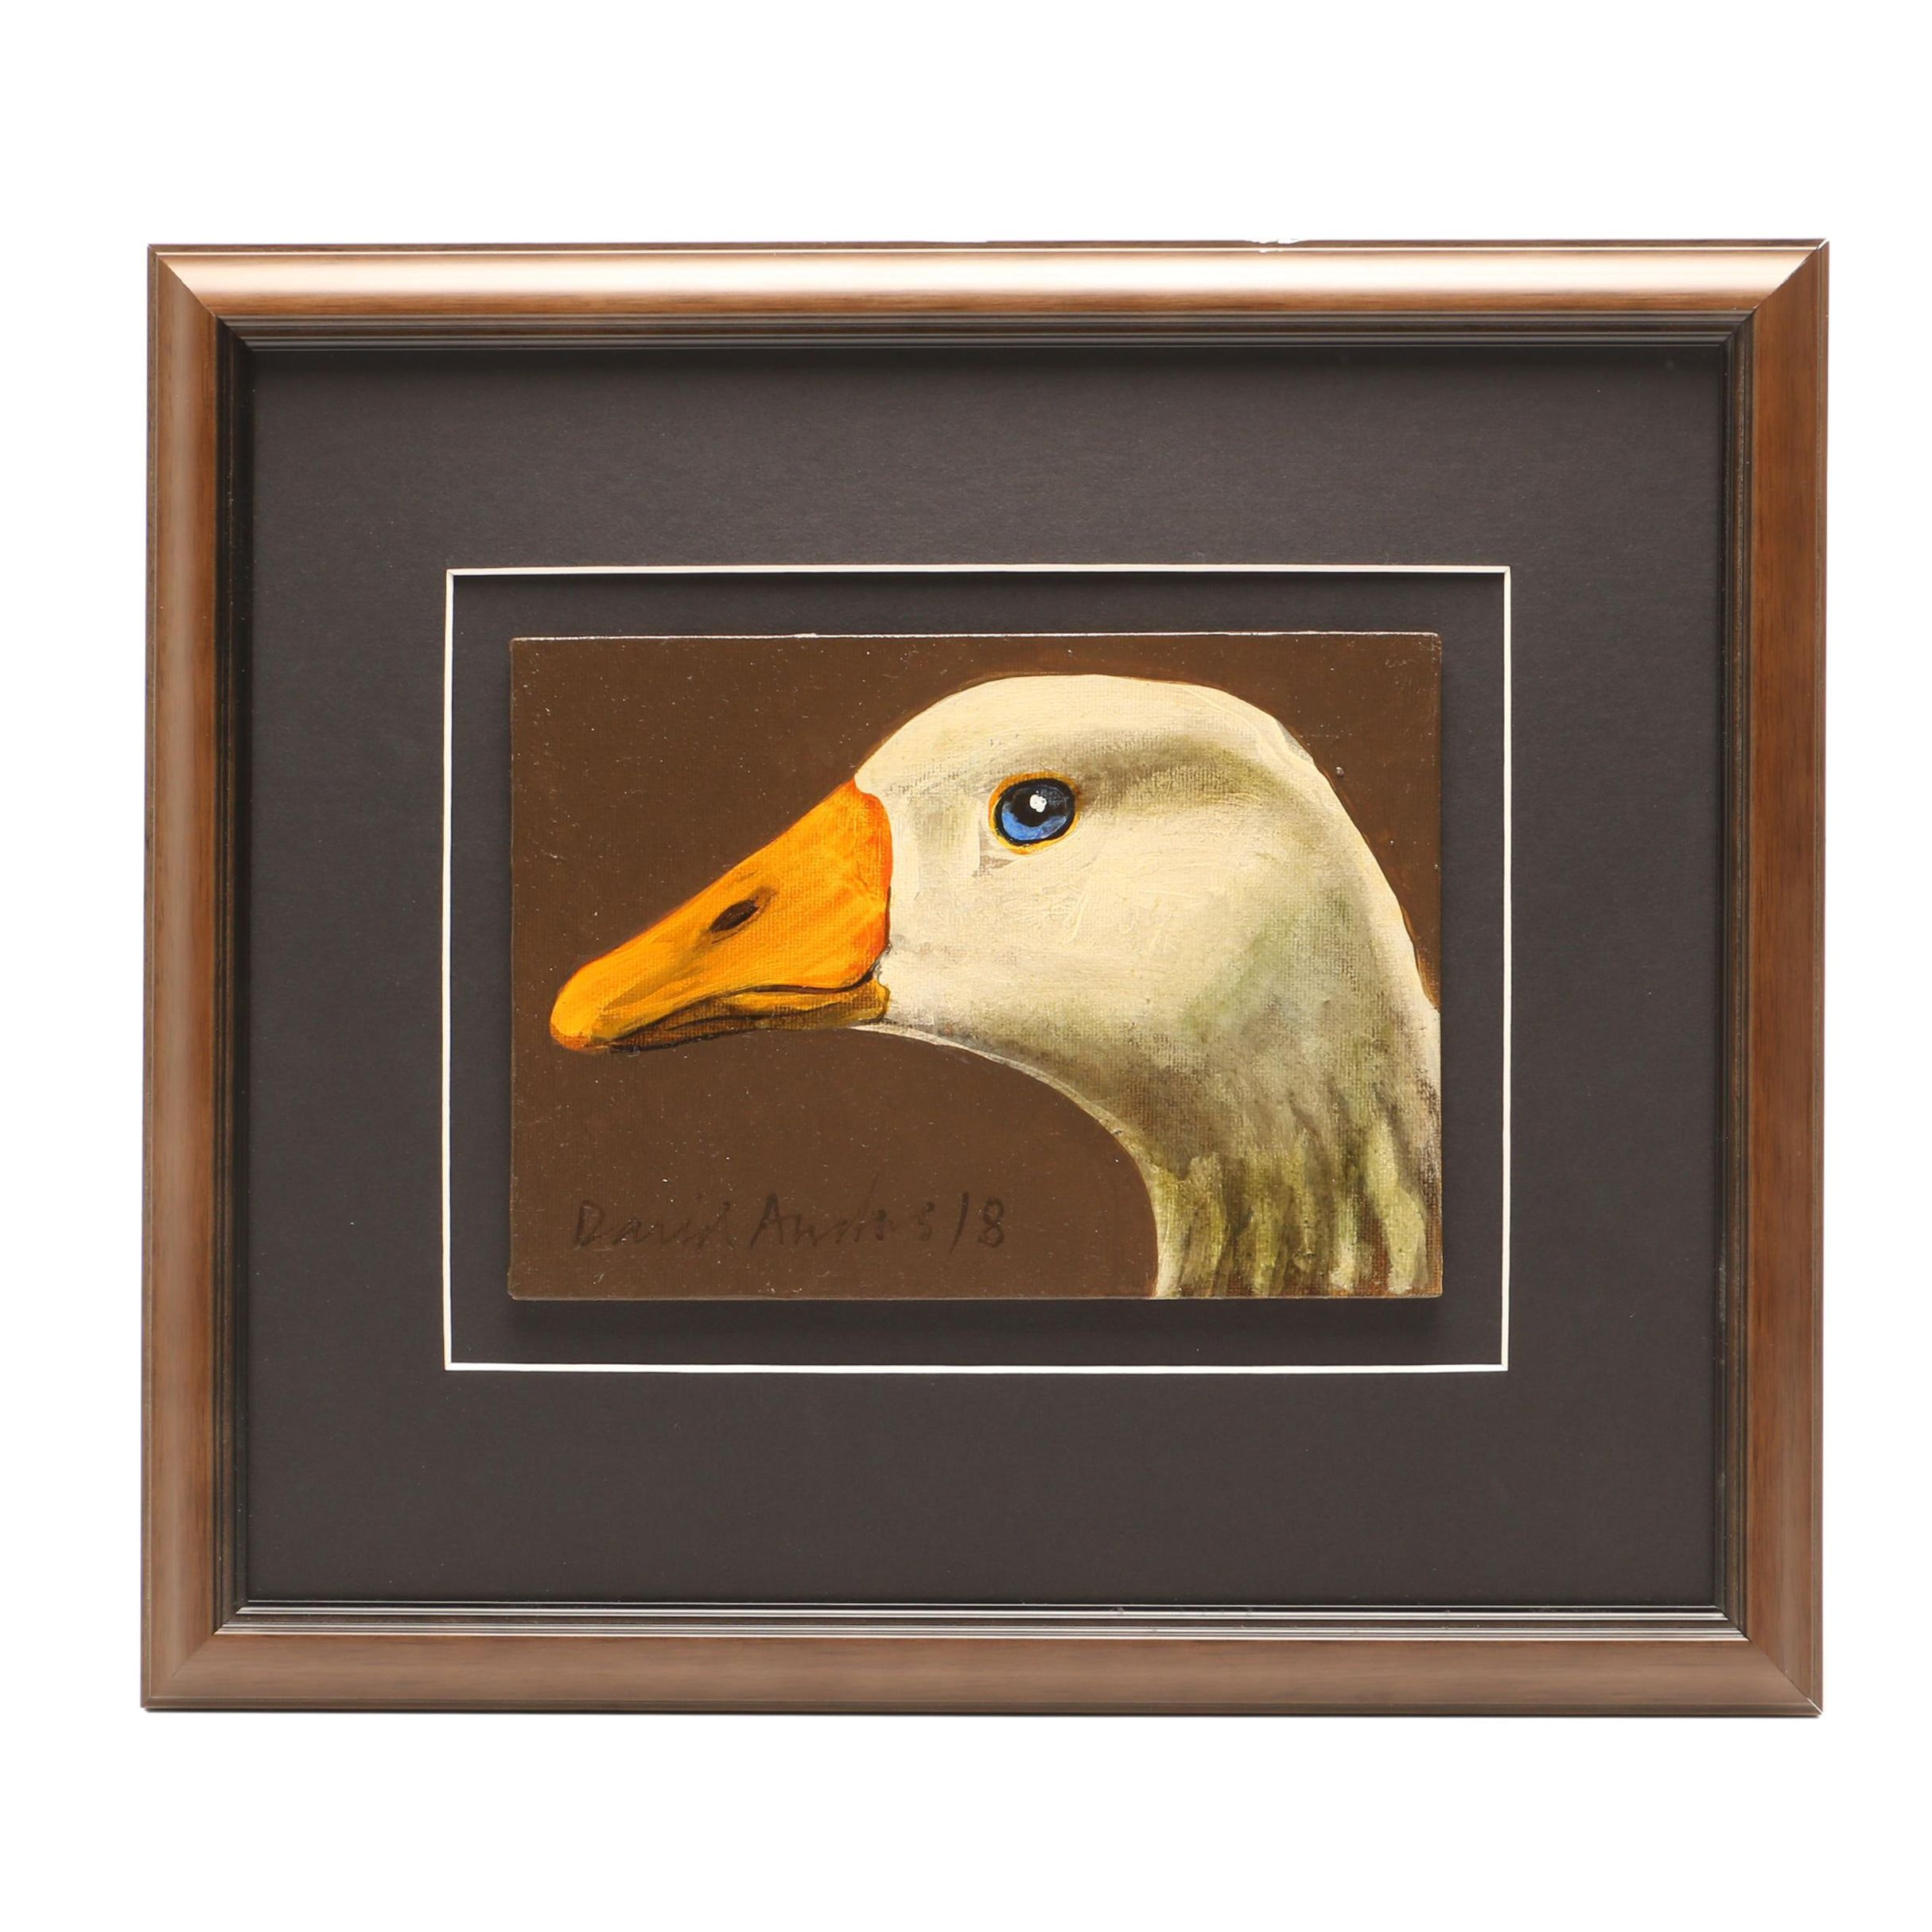 David Andrews Oil Painting of Goose